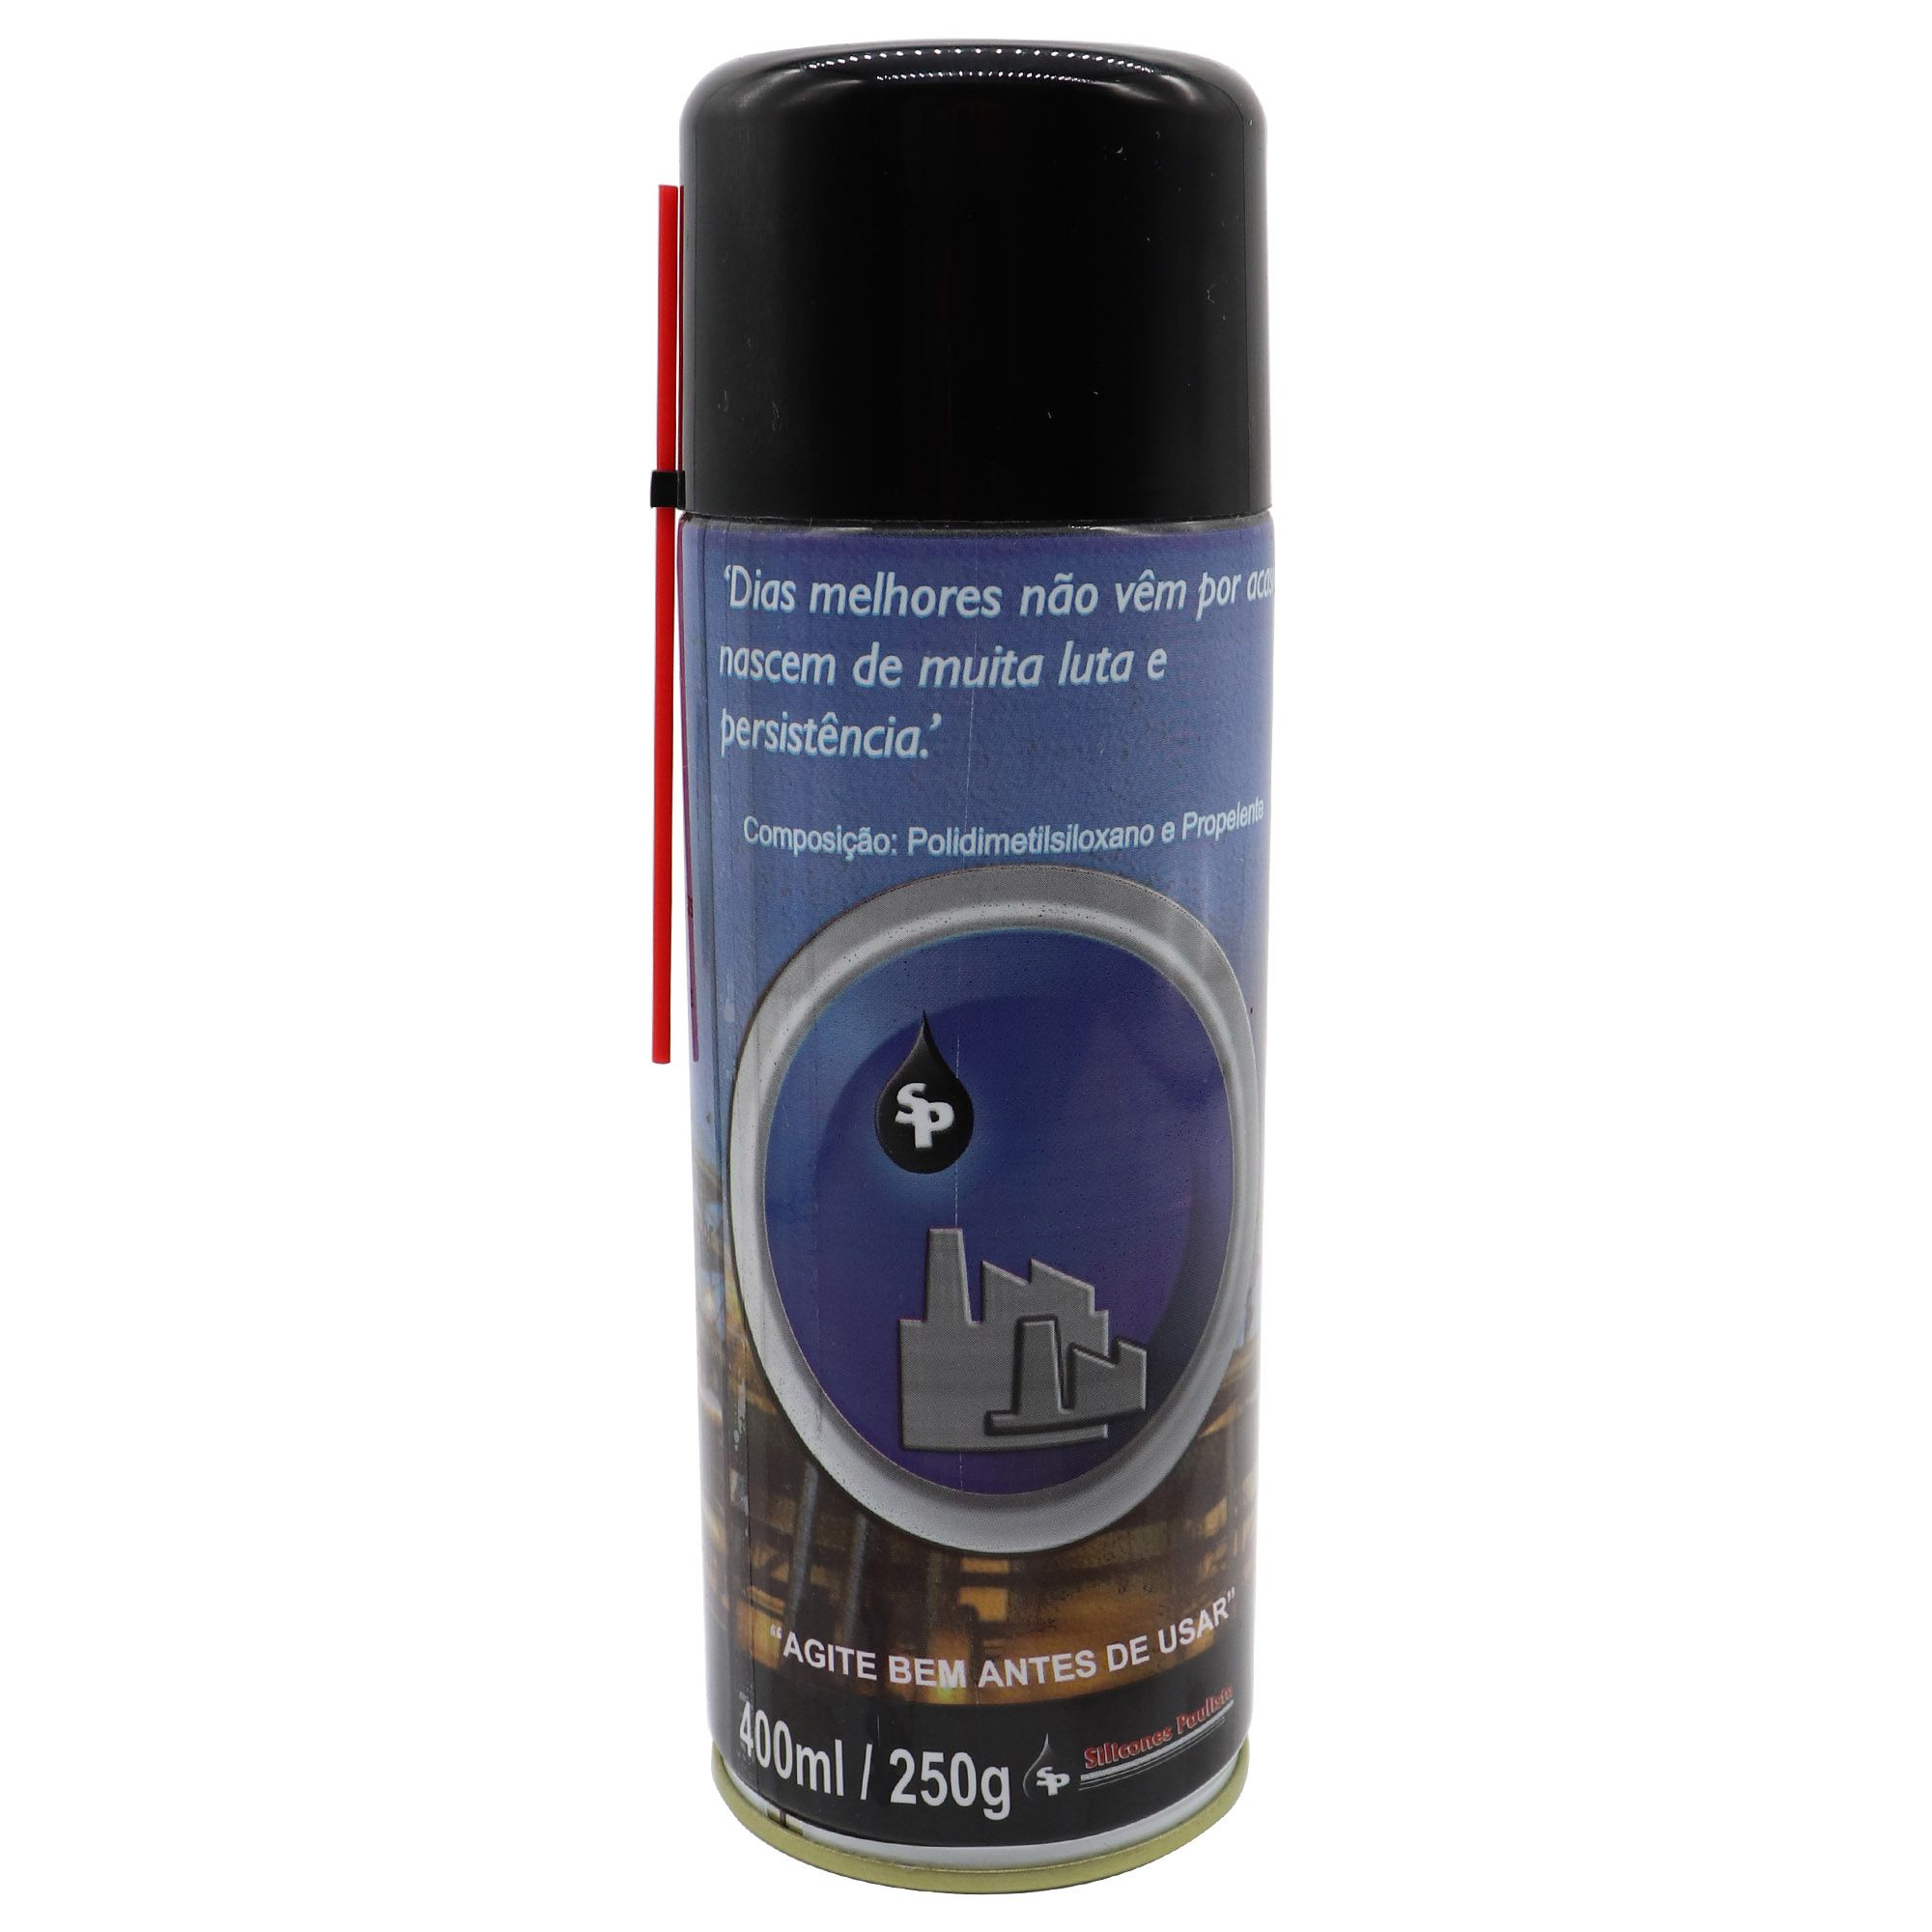 Spray de Silicone 400ml/250g